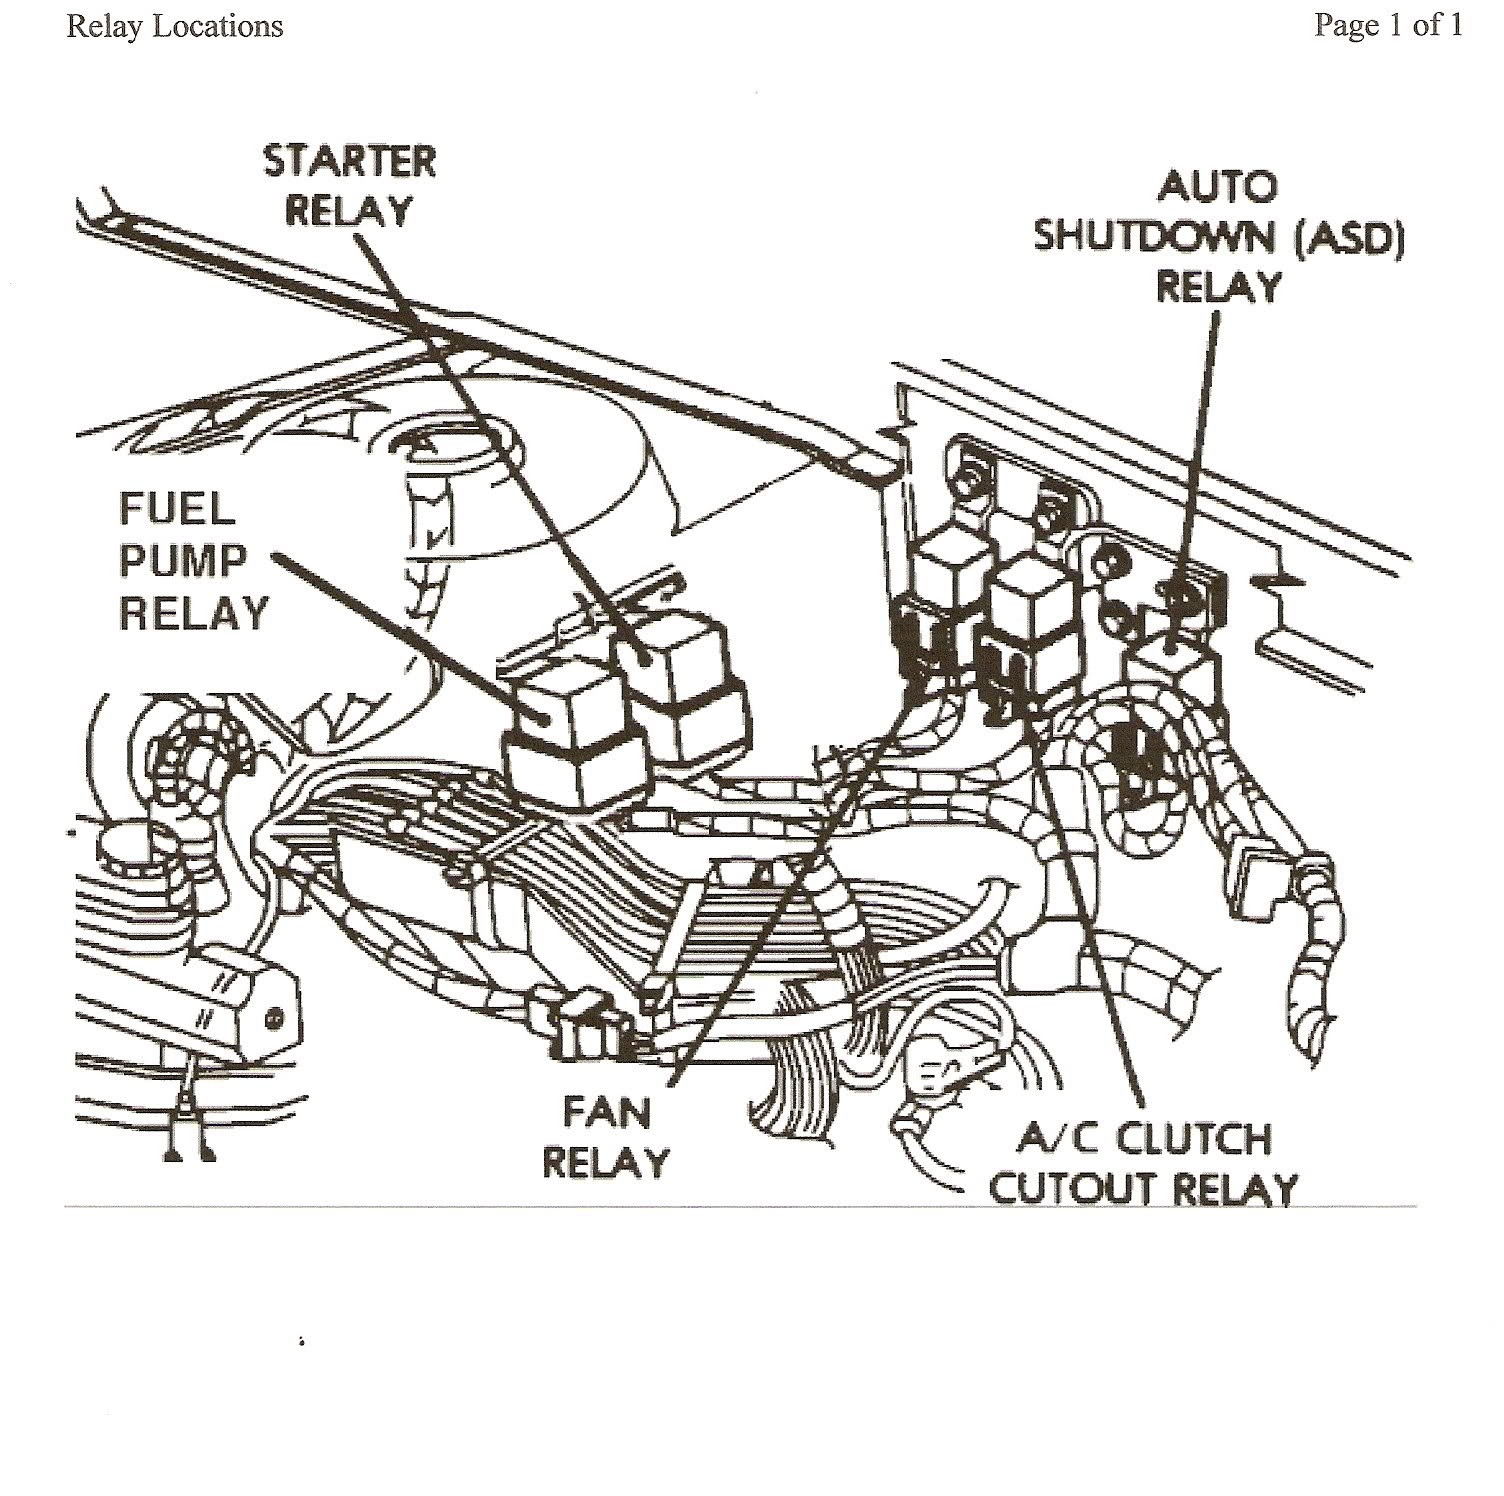 2006 Chrysler 300 Engine Diagram 3 5 Pacifica